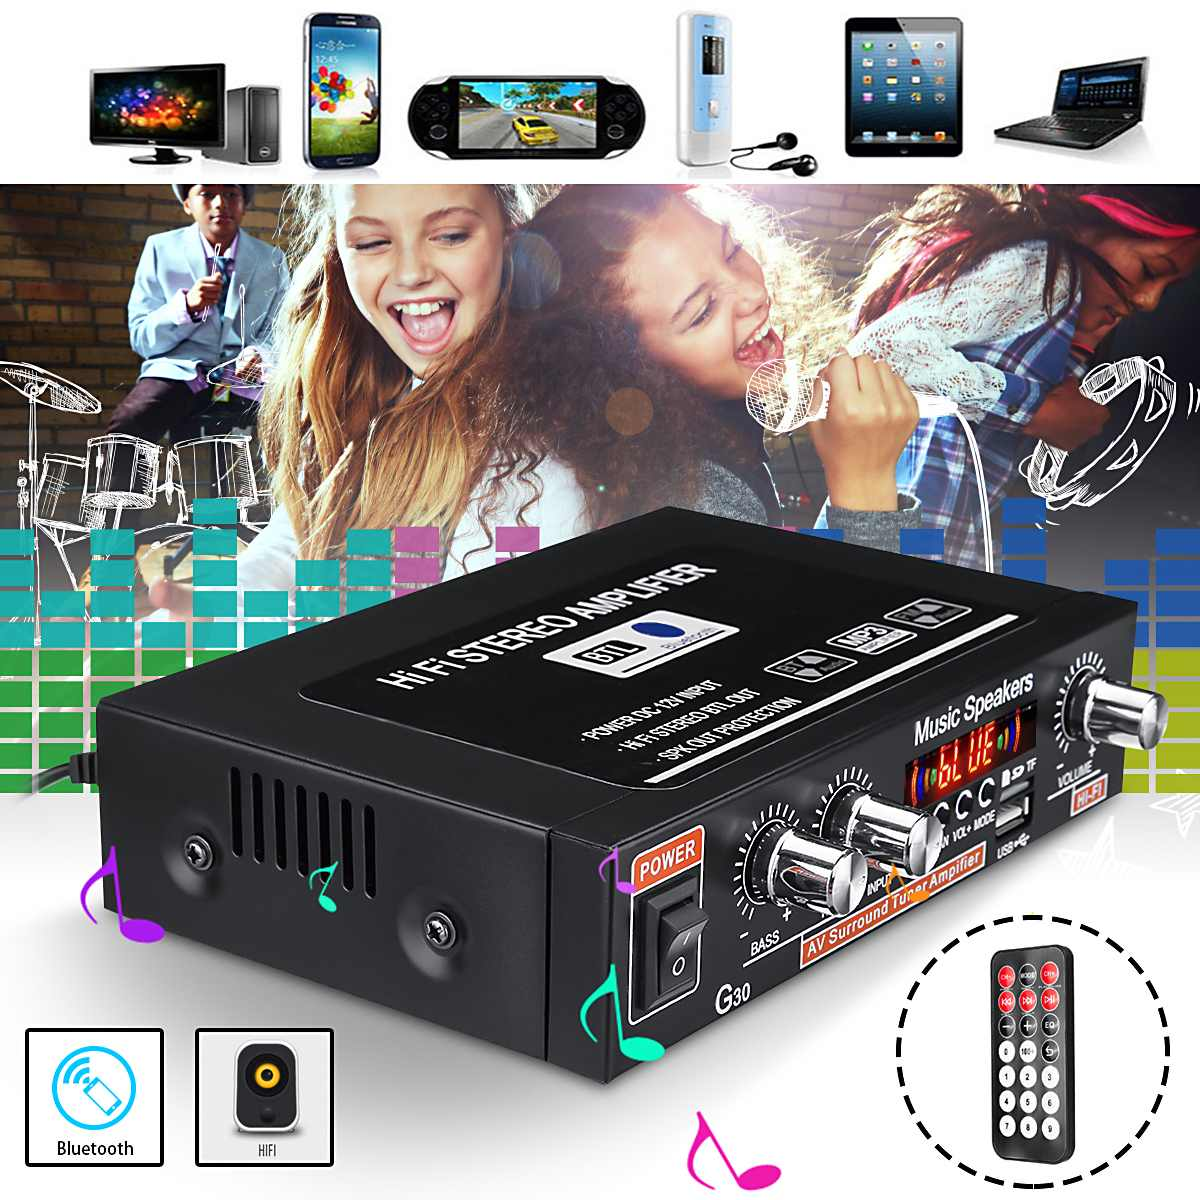 DC 12V Power bluetooth HiFi Amplifier Home Theater Stereo Amplificador Audio Car Amplifiers Support  FM TF Card AUX MP3 PlayerDC 12V Power bluetooth HiFi Amplifier Home Theater Stereo Amplificador Audio Car Amplifiers Support  FM TF Card AUX MP3 Player